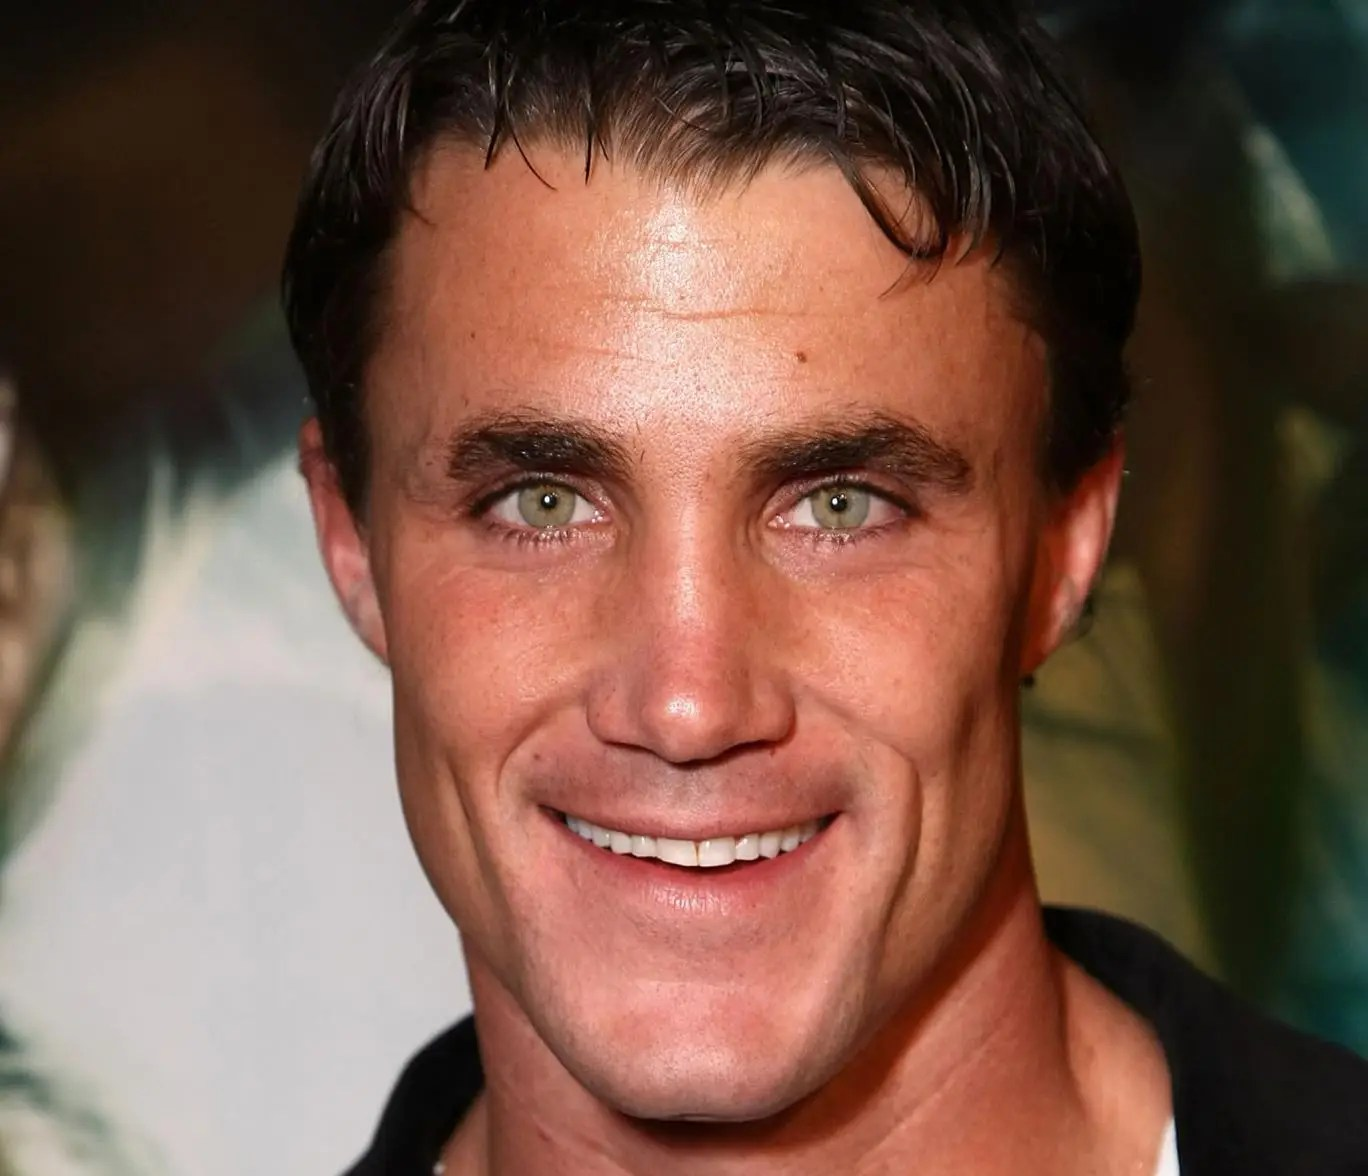 Greg Plitt has died aged 37 after being struck by a train